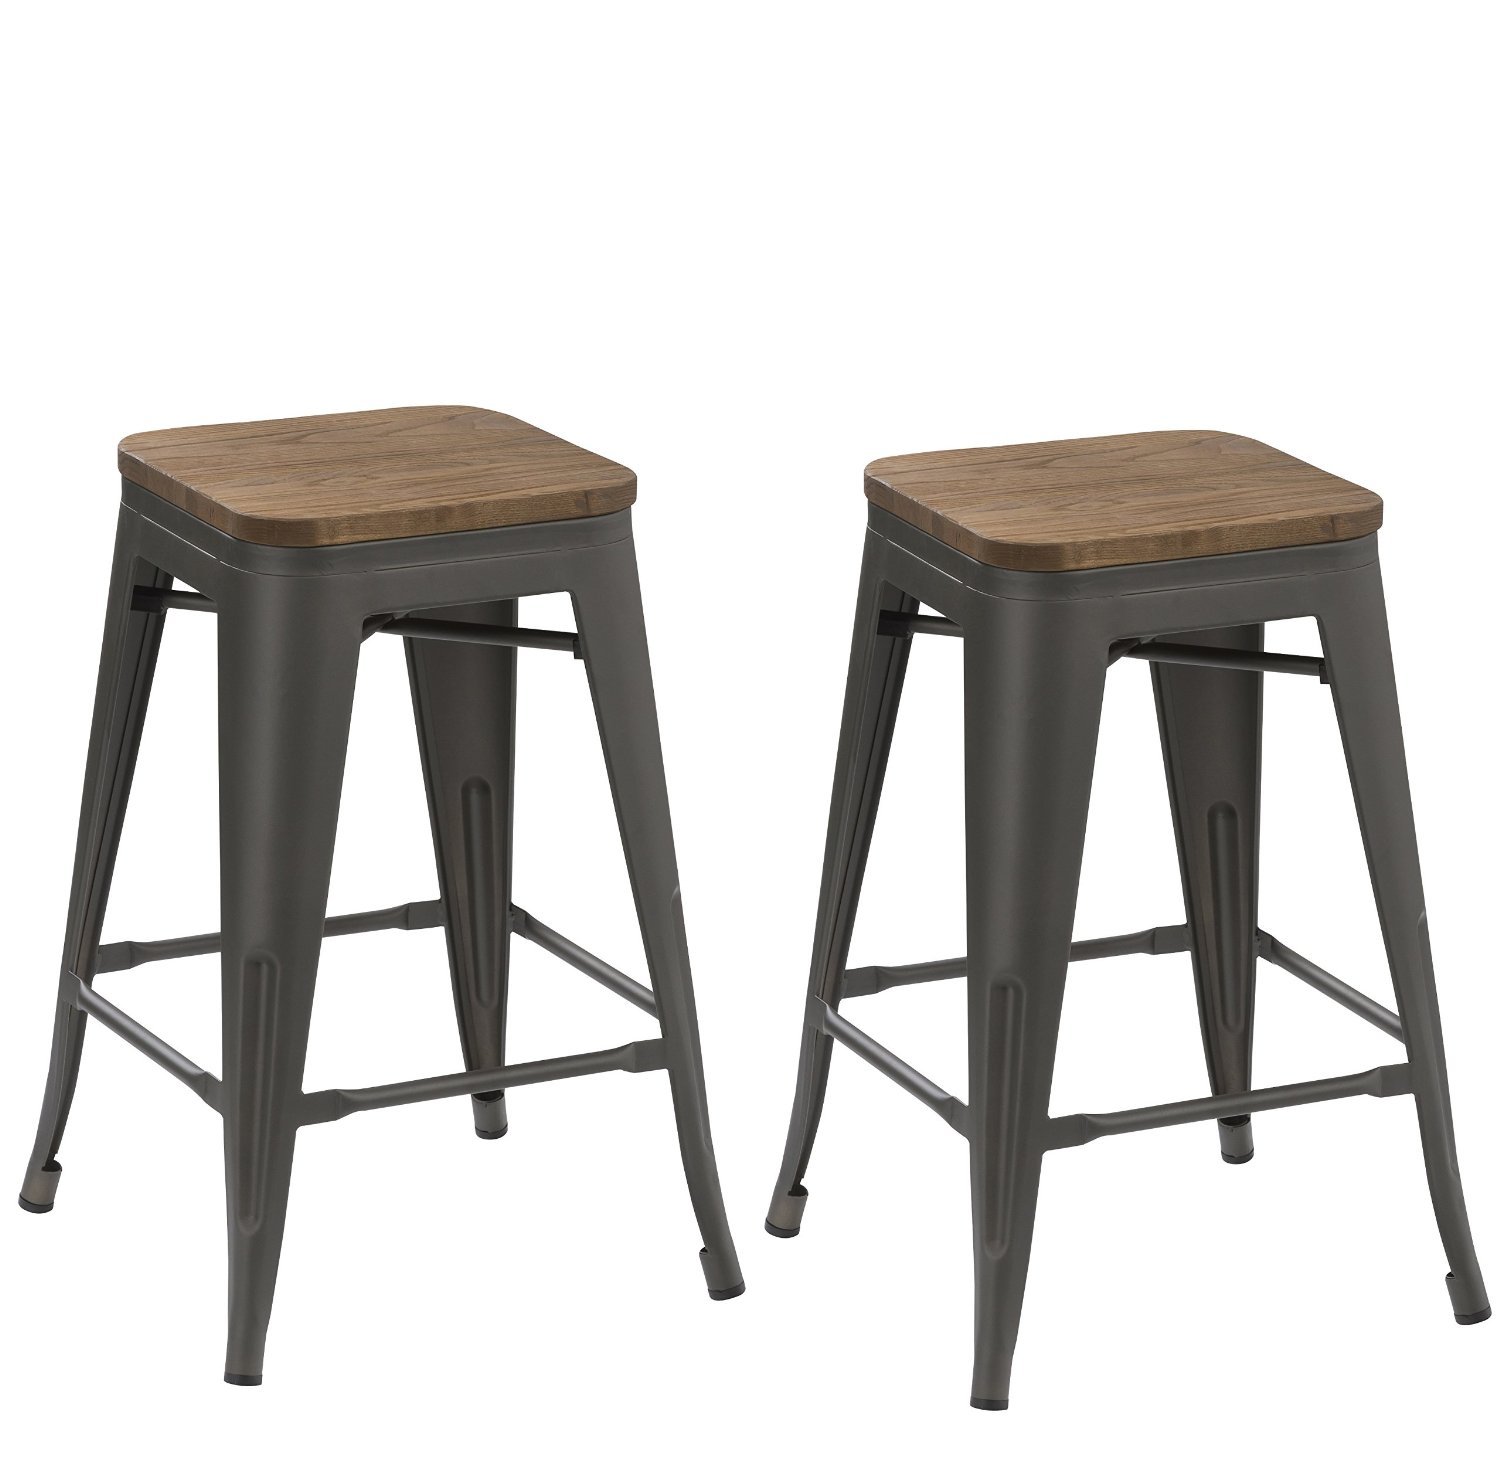 24-inch Industrial Tabouret Antique Distressed Gunmetal stackable Dining Metal Bar Stools Handmade Wood top seat (Set of Two)